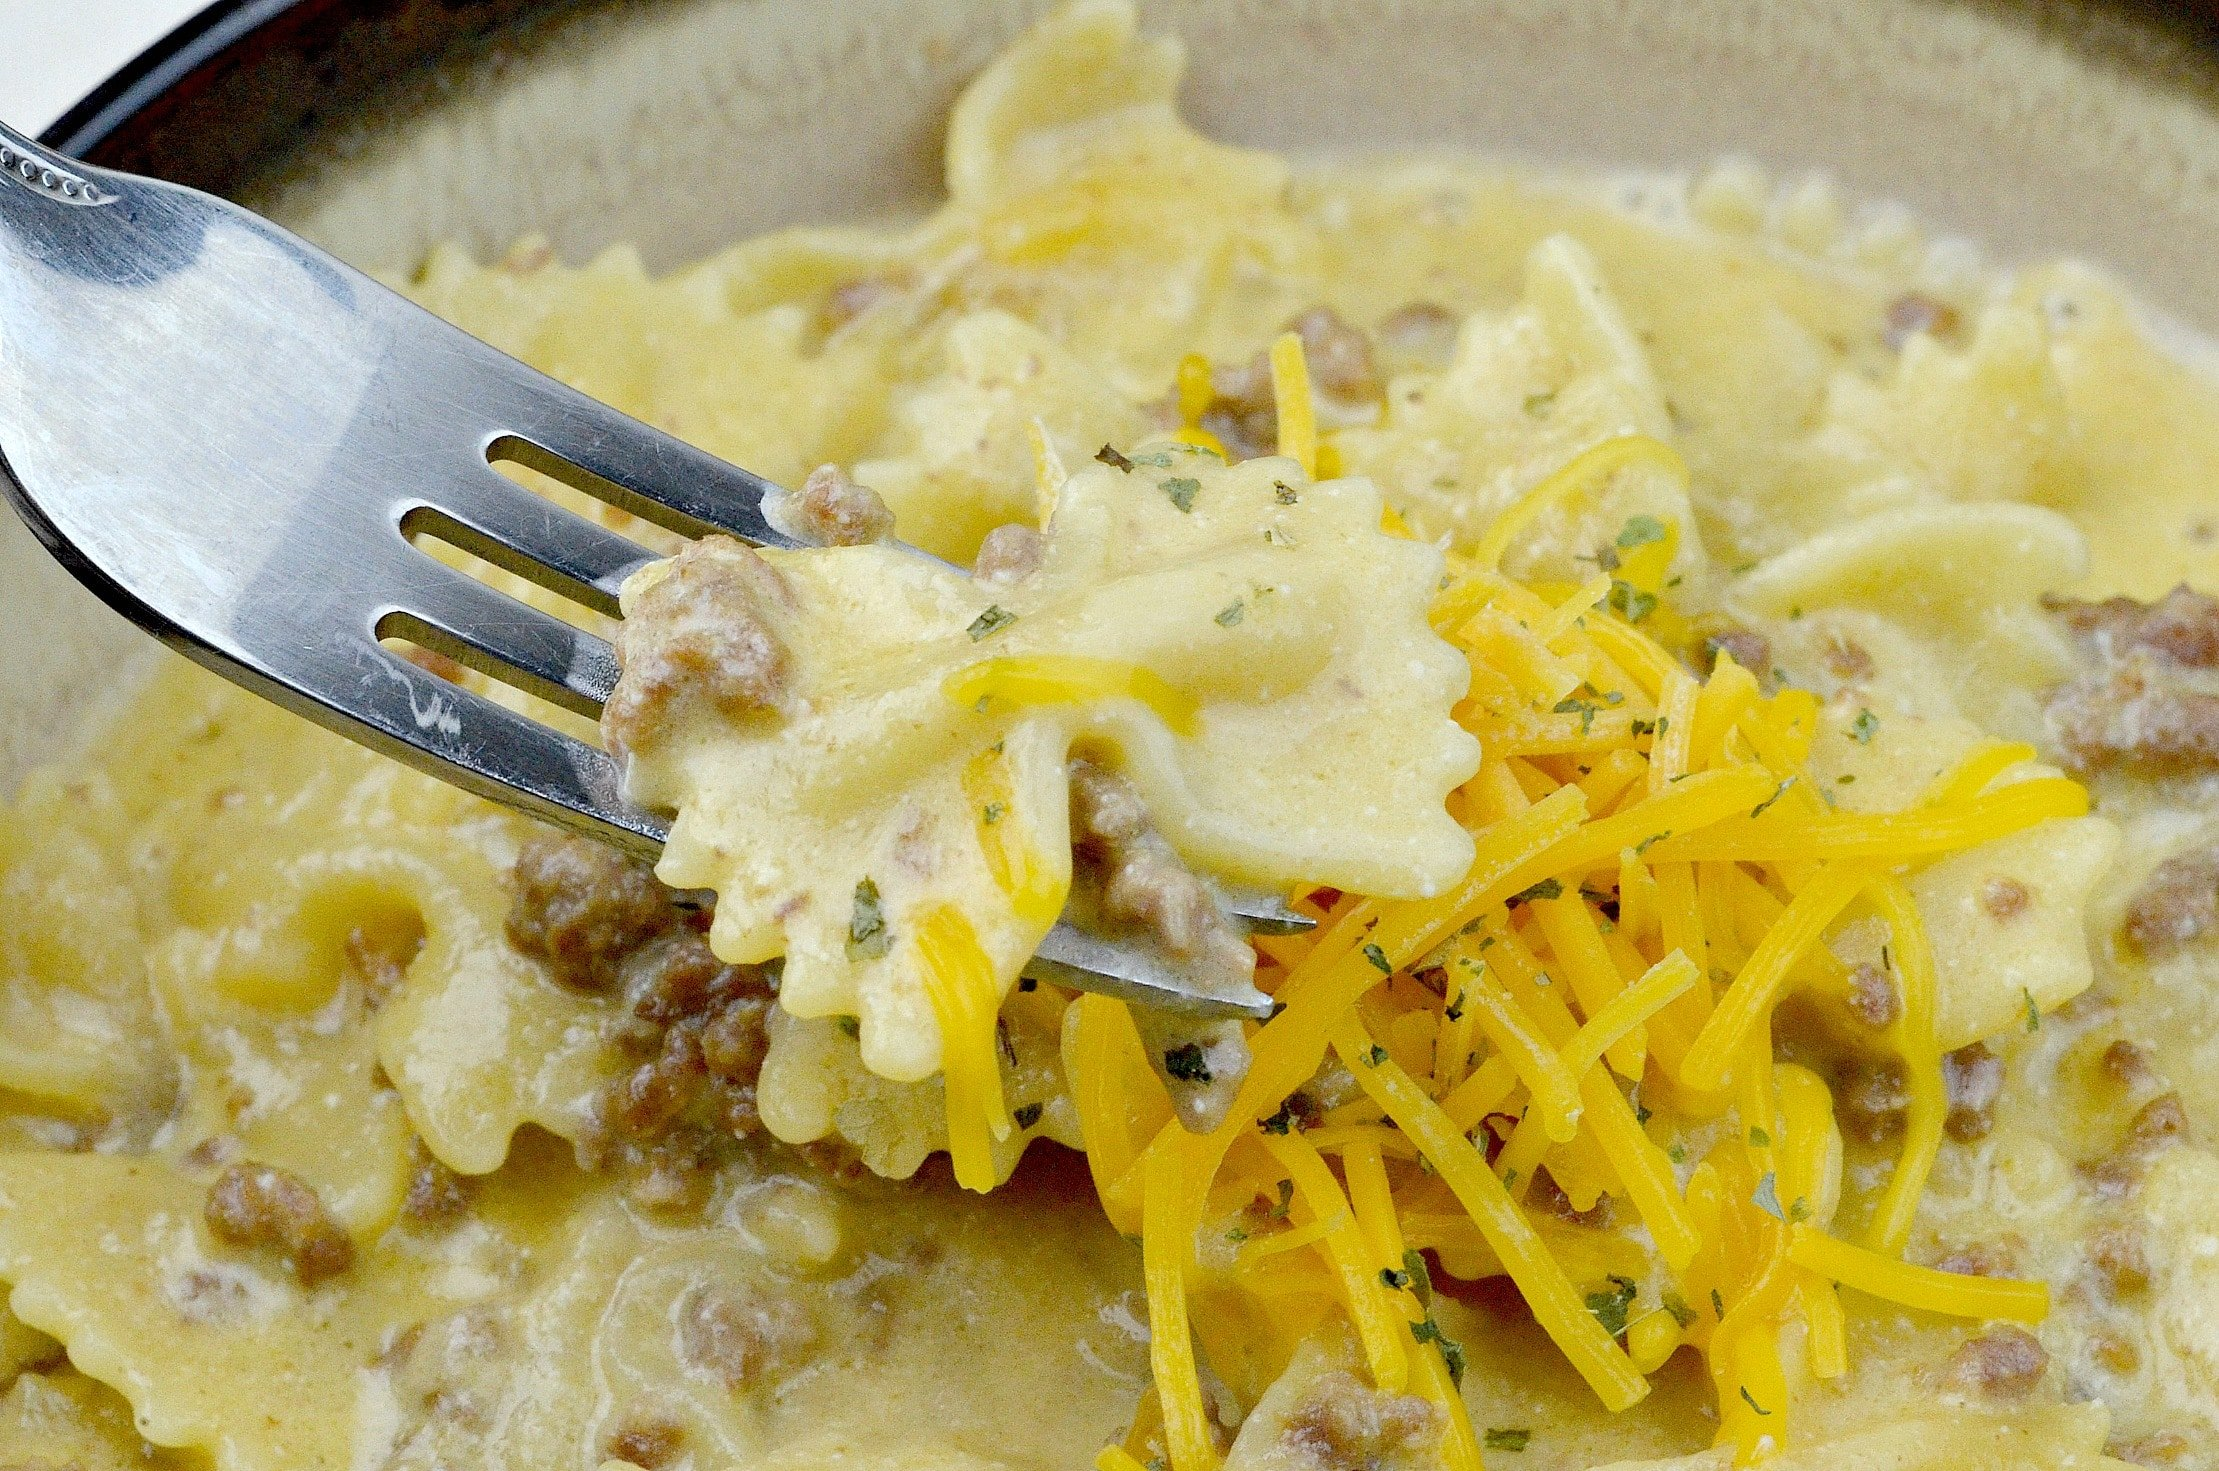 Copycat Hamburger Helper Cheddar Melt Closeup On Fork. This creamy and delicious Pressure Cooker Copycat Hamburger Helper Cheddar Melt will knock your families socks off and keep them coming for more.